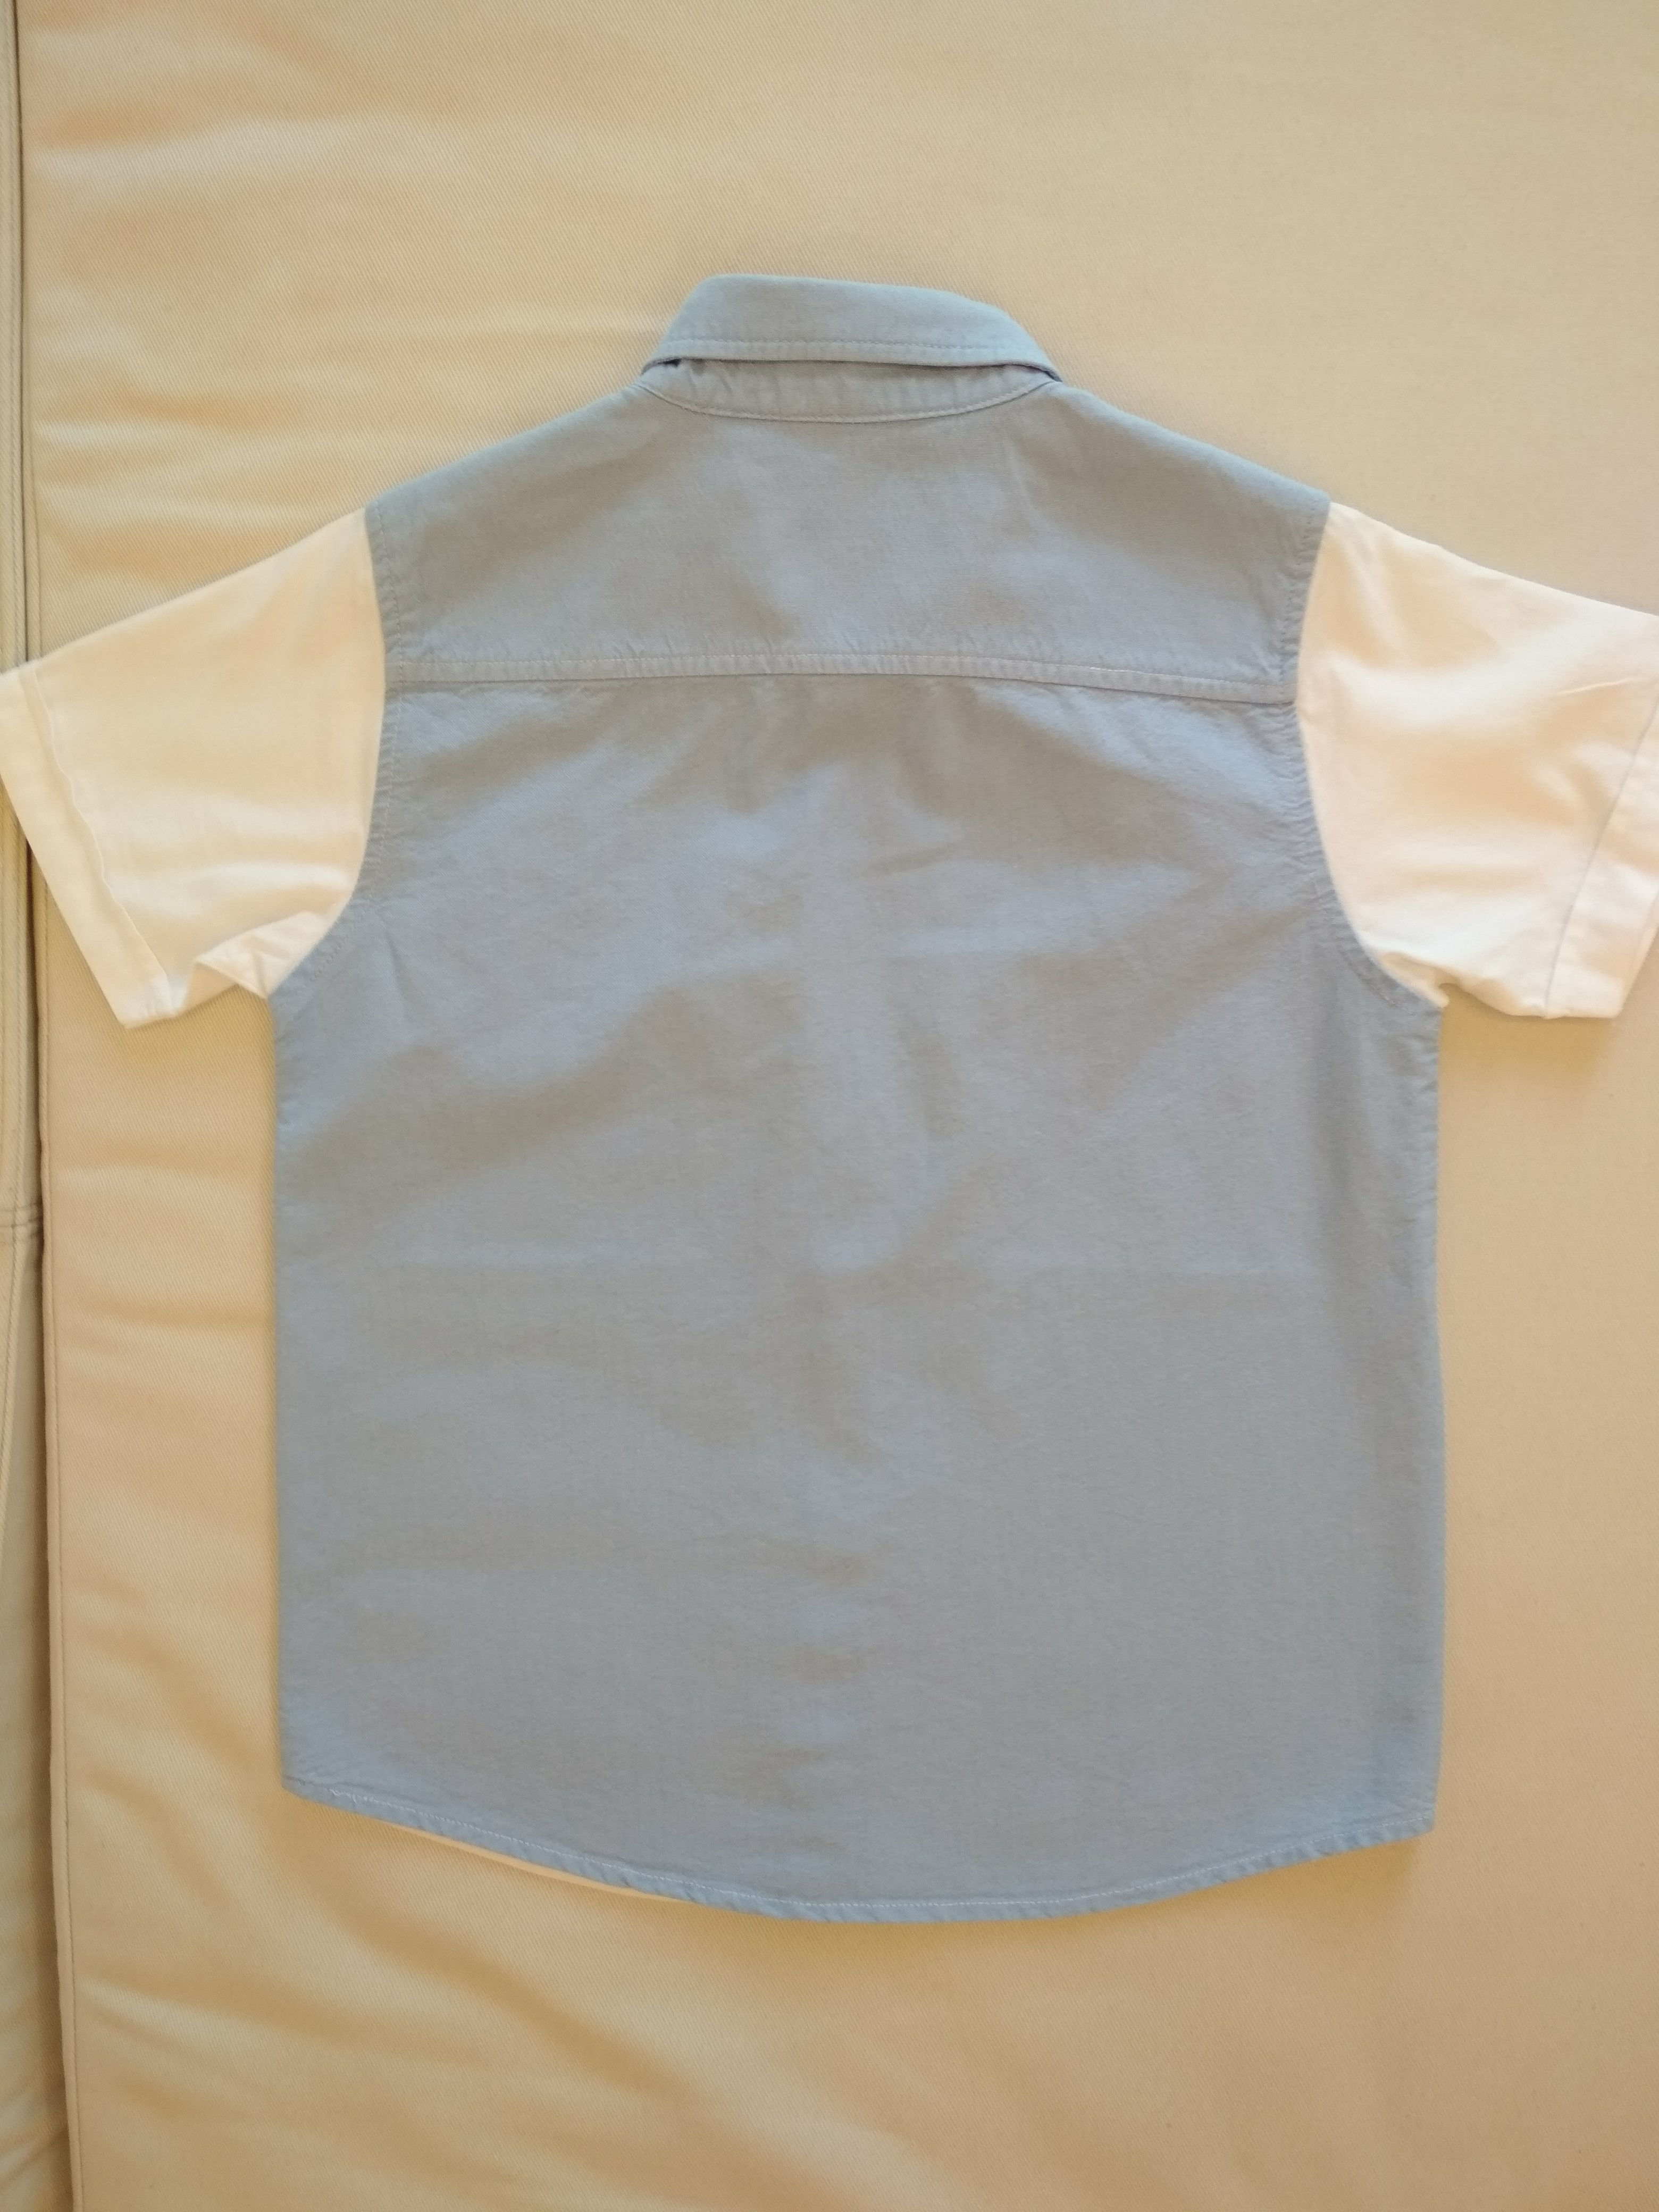 [PL] Carter's 6T Blue and White Shirt